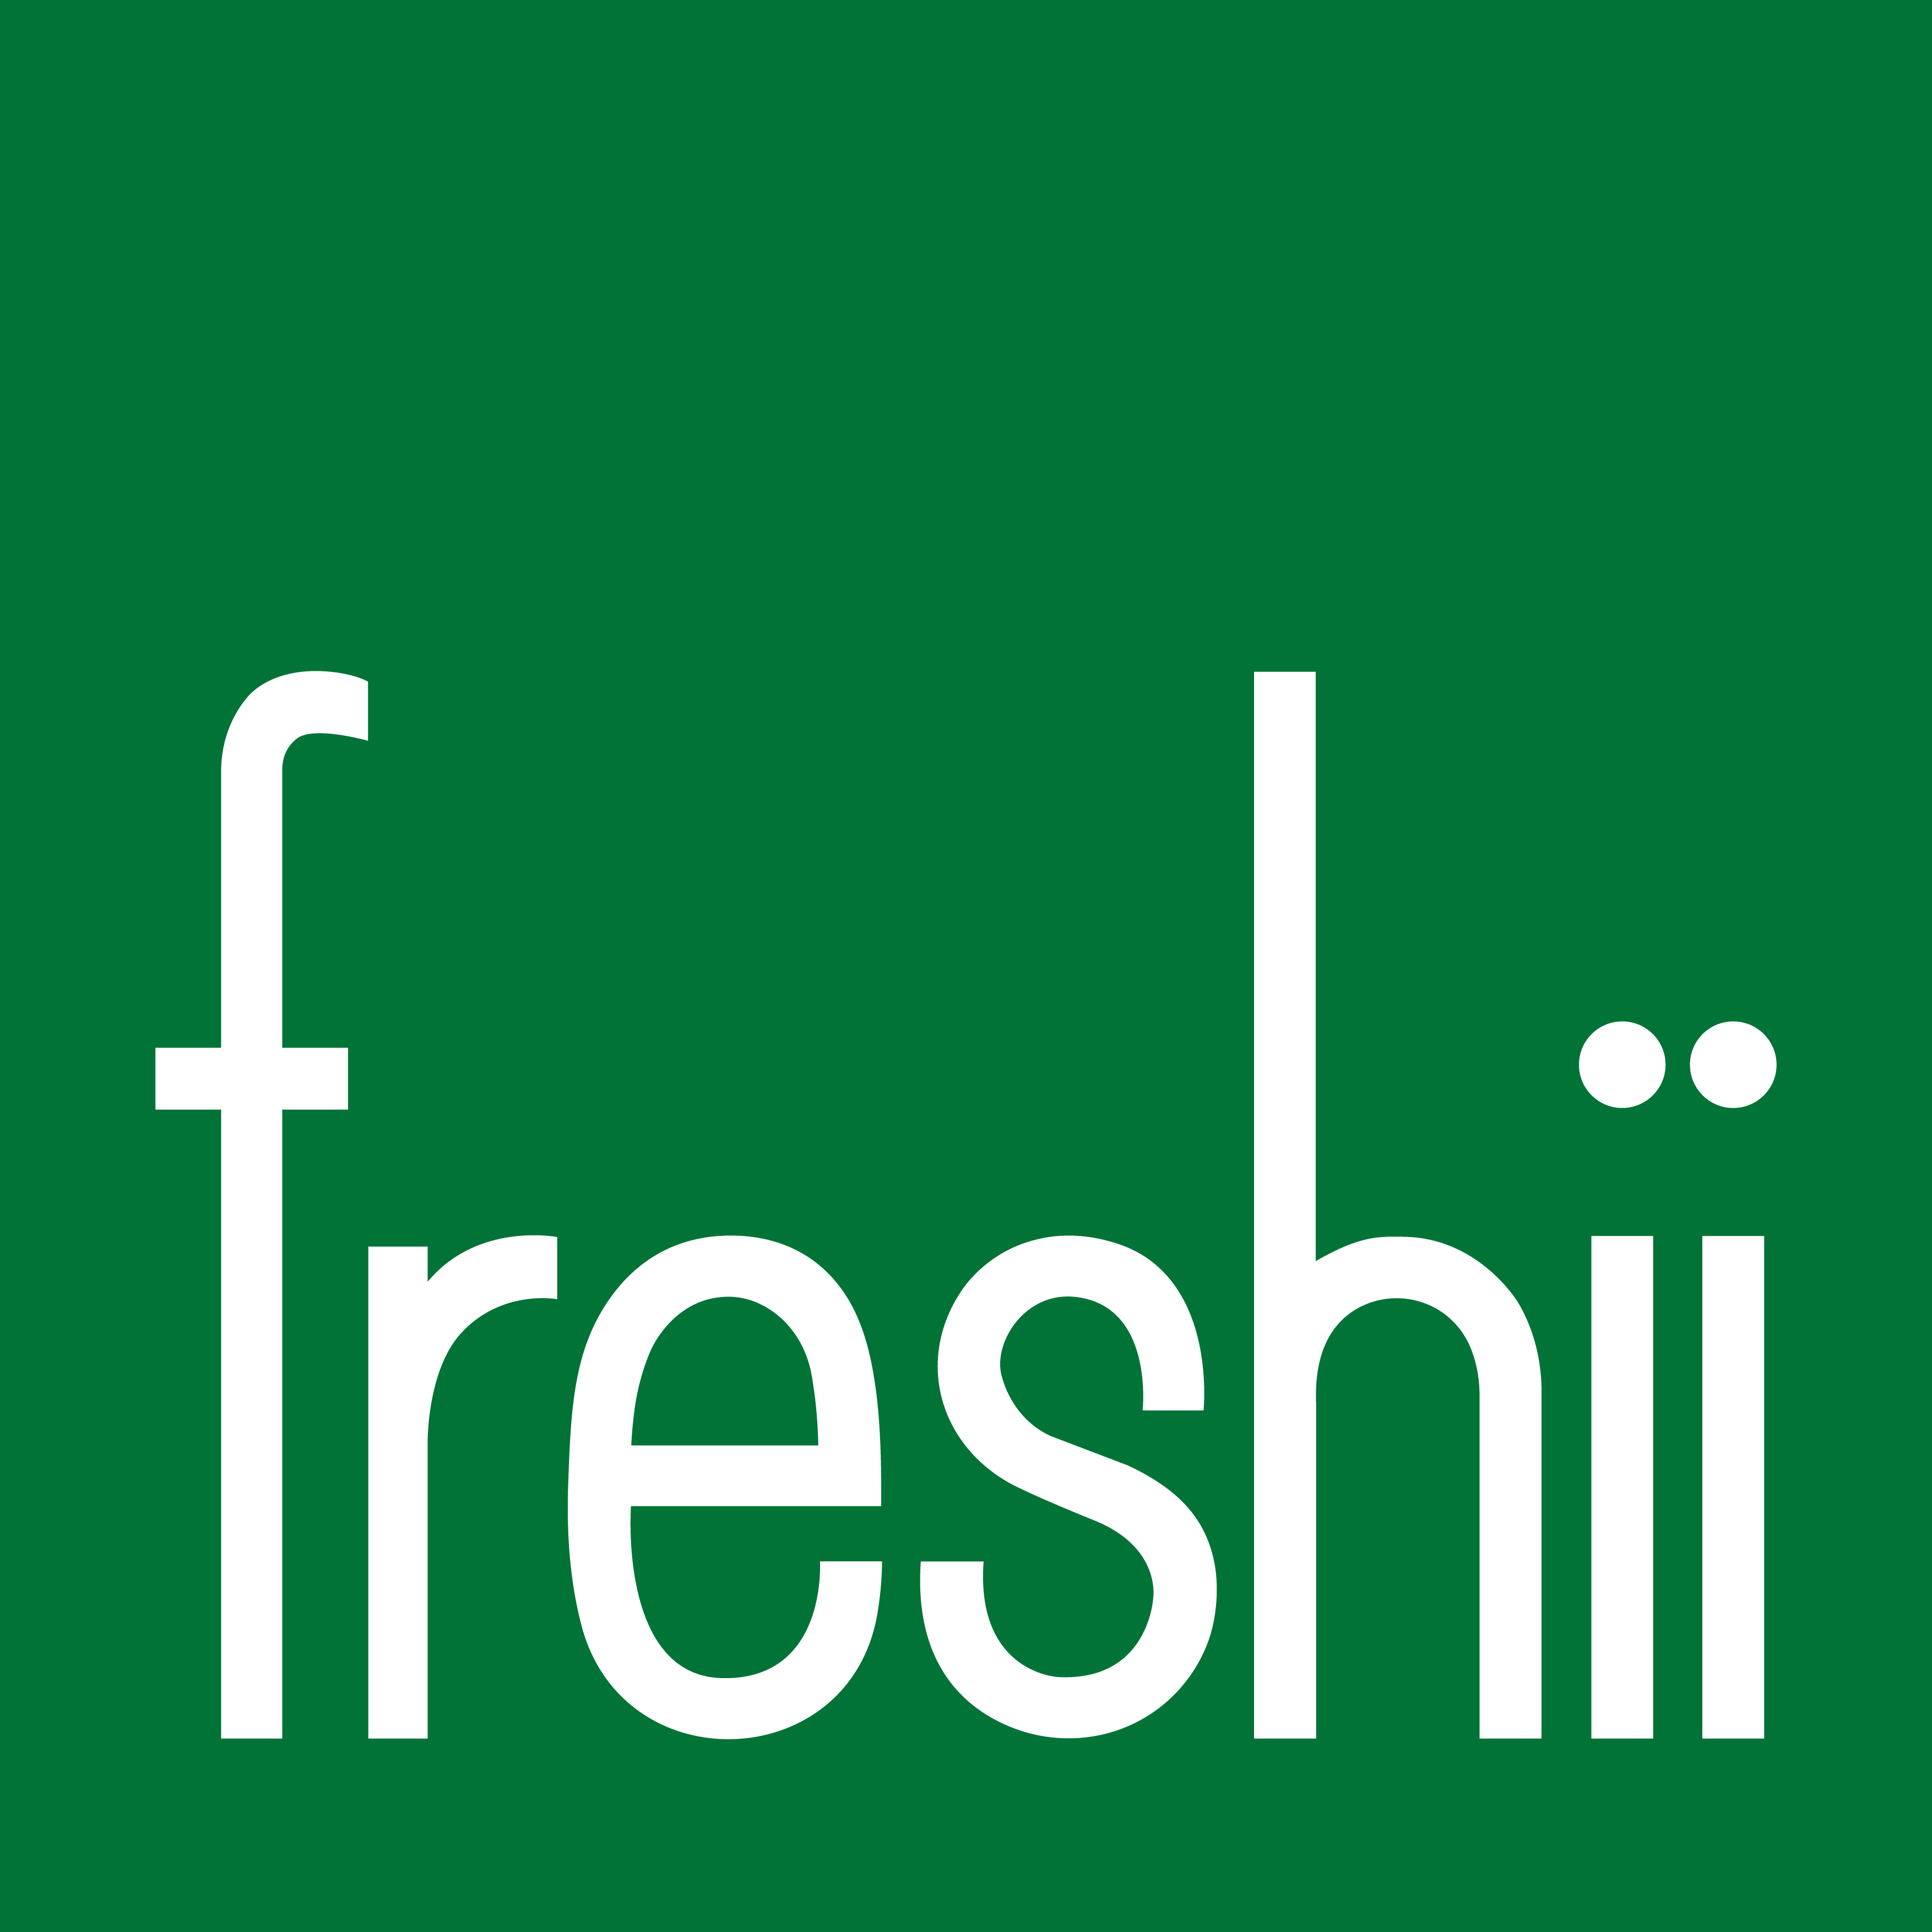 Freshii - Healthy Fast Food Restaurant Franchise. Allendale Square, Perth